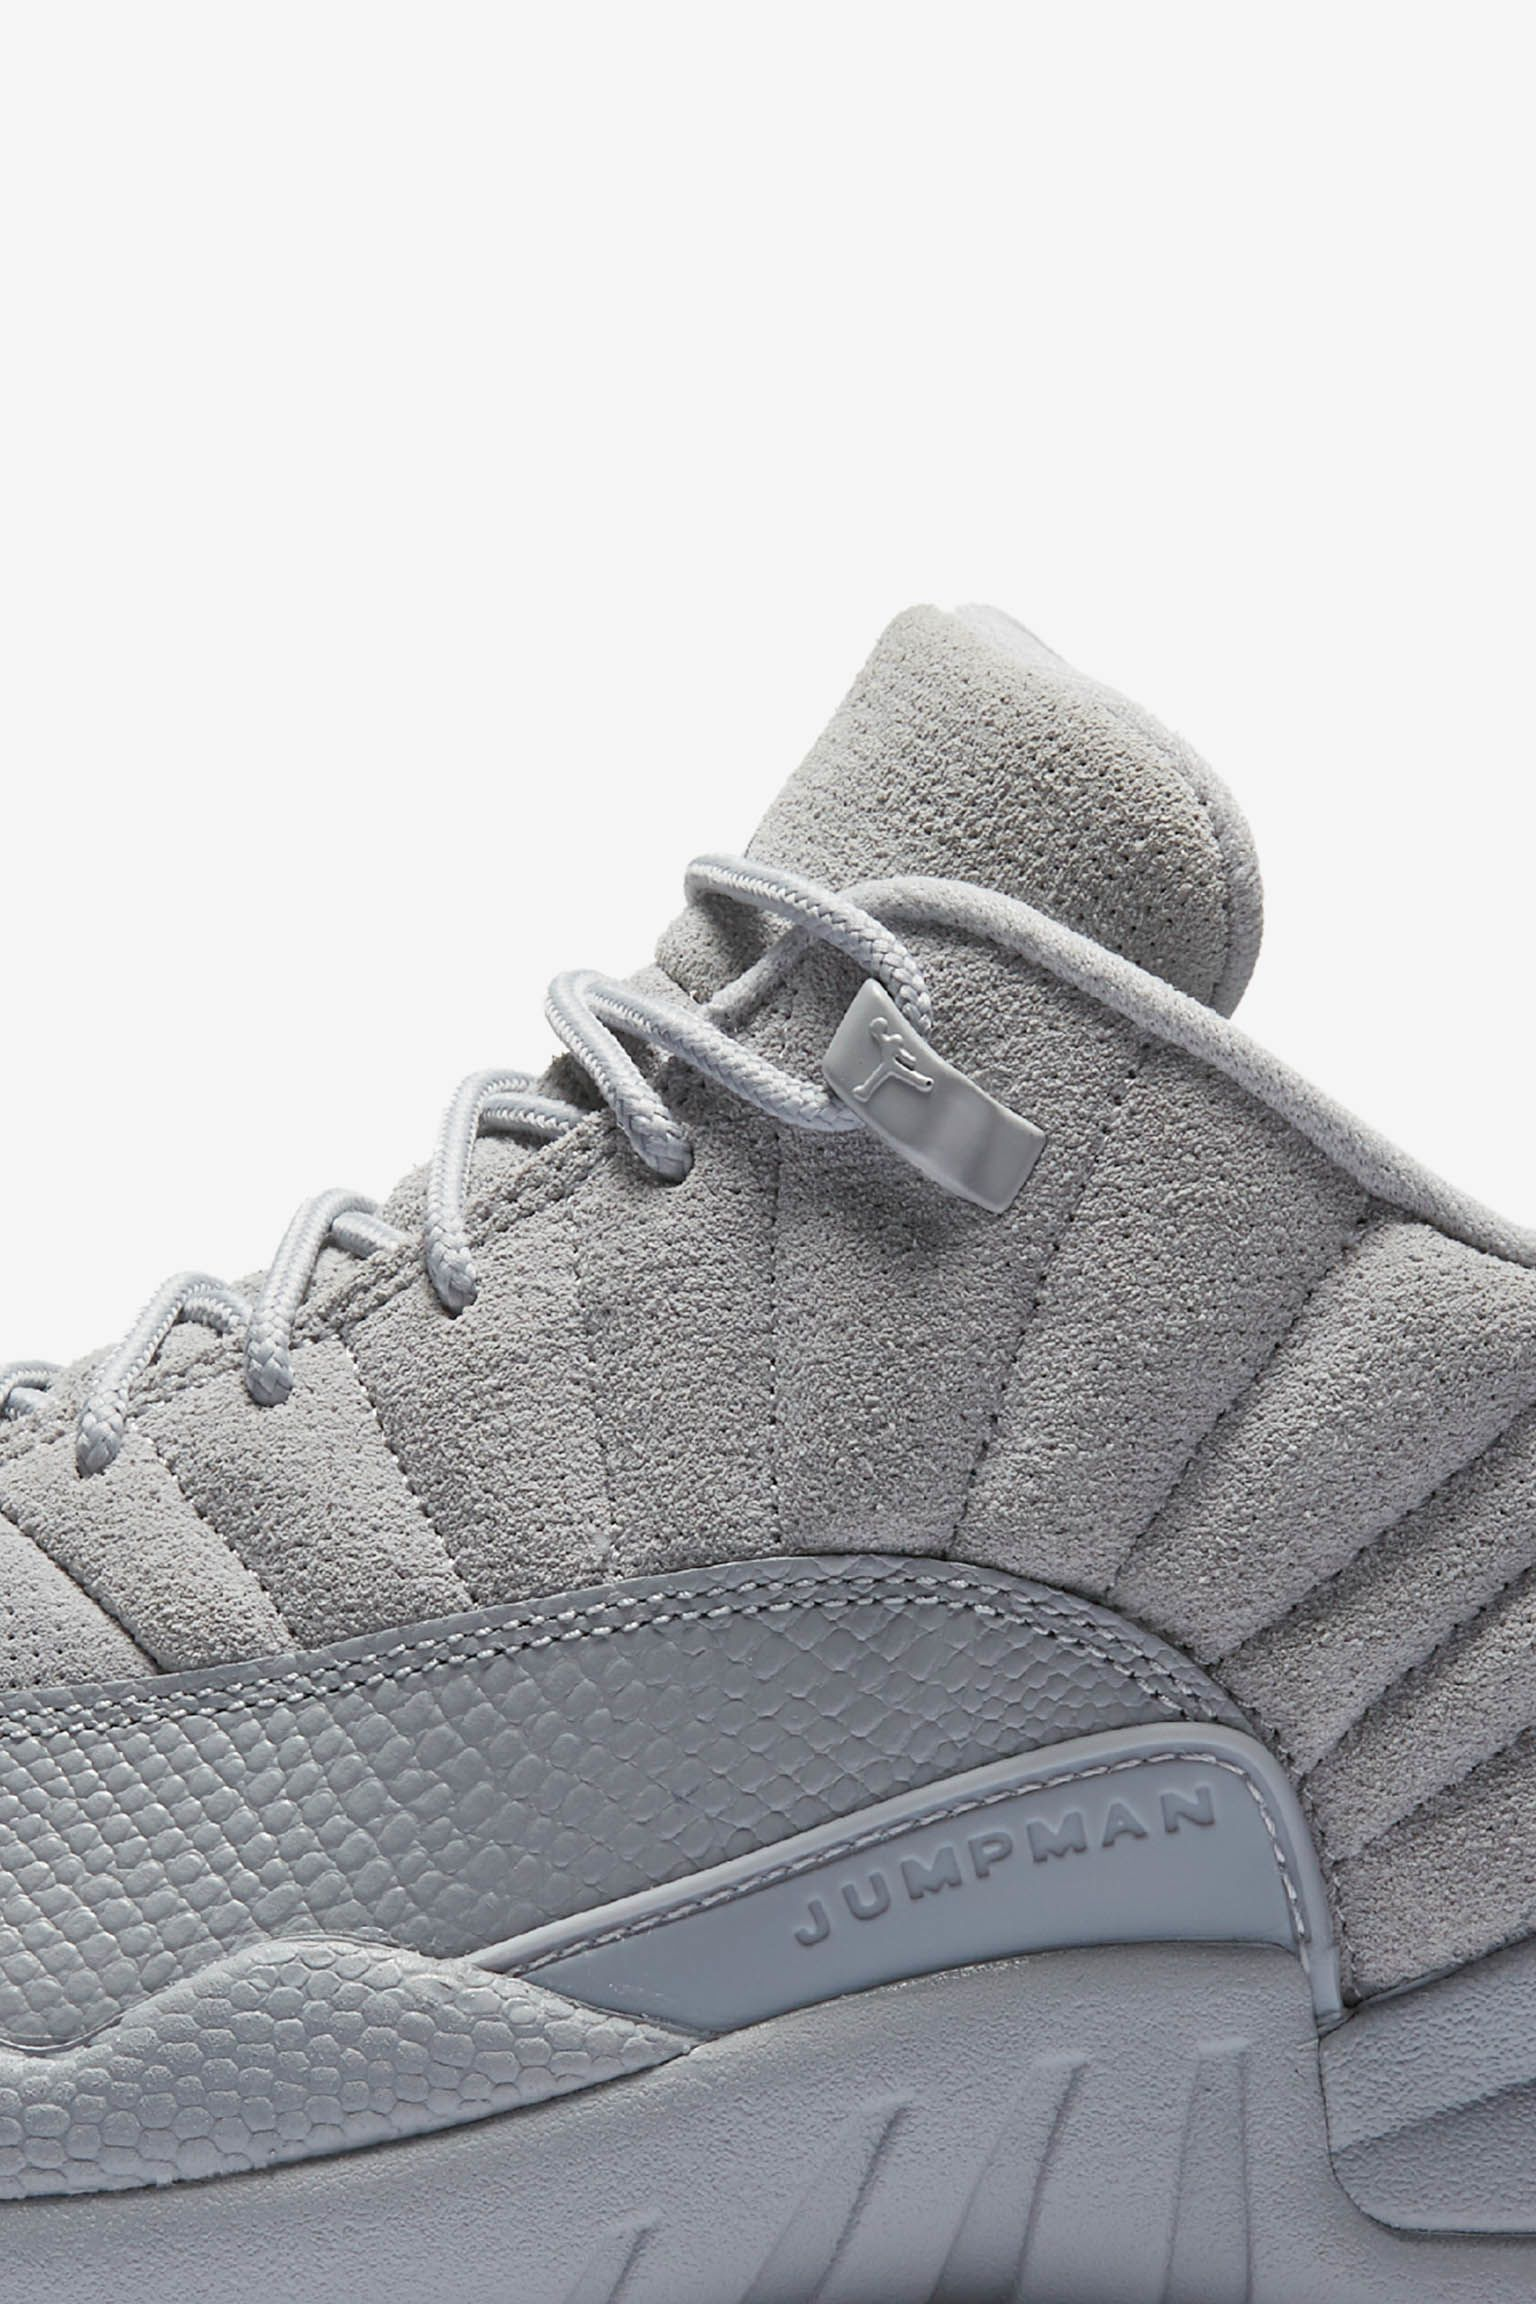 Air Jordan 12 Retro Low 'Wolf Grey'